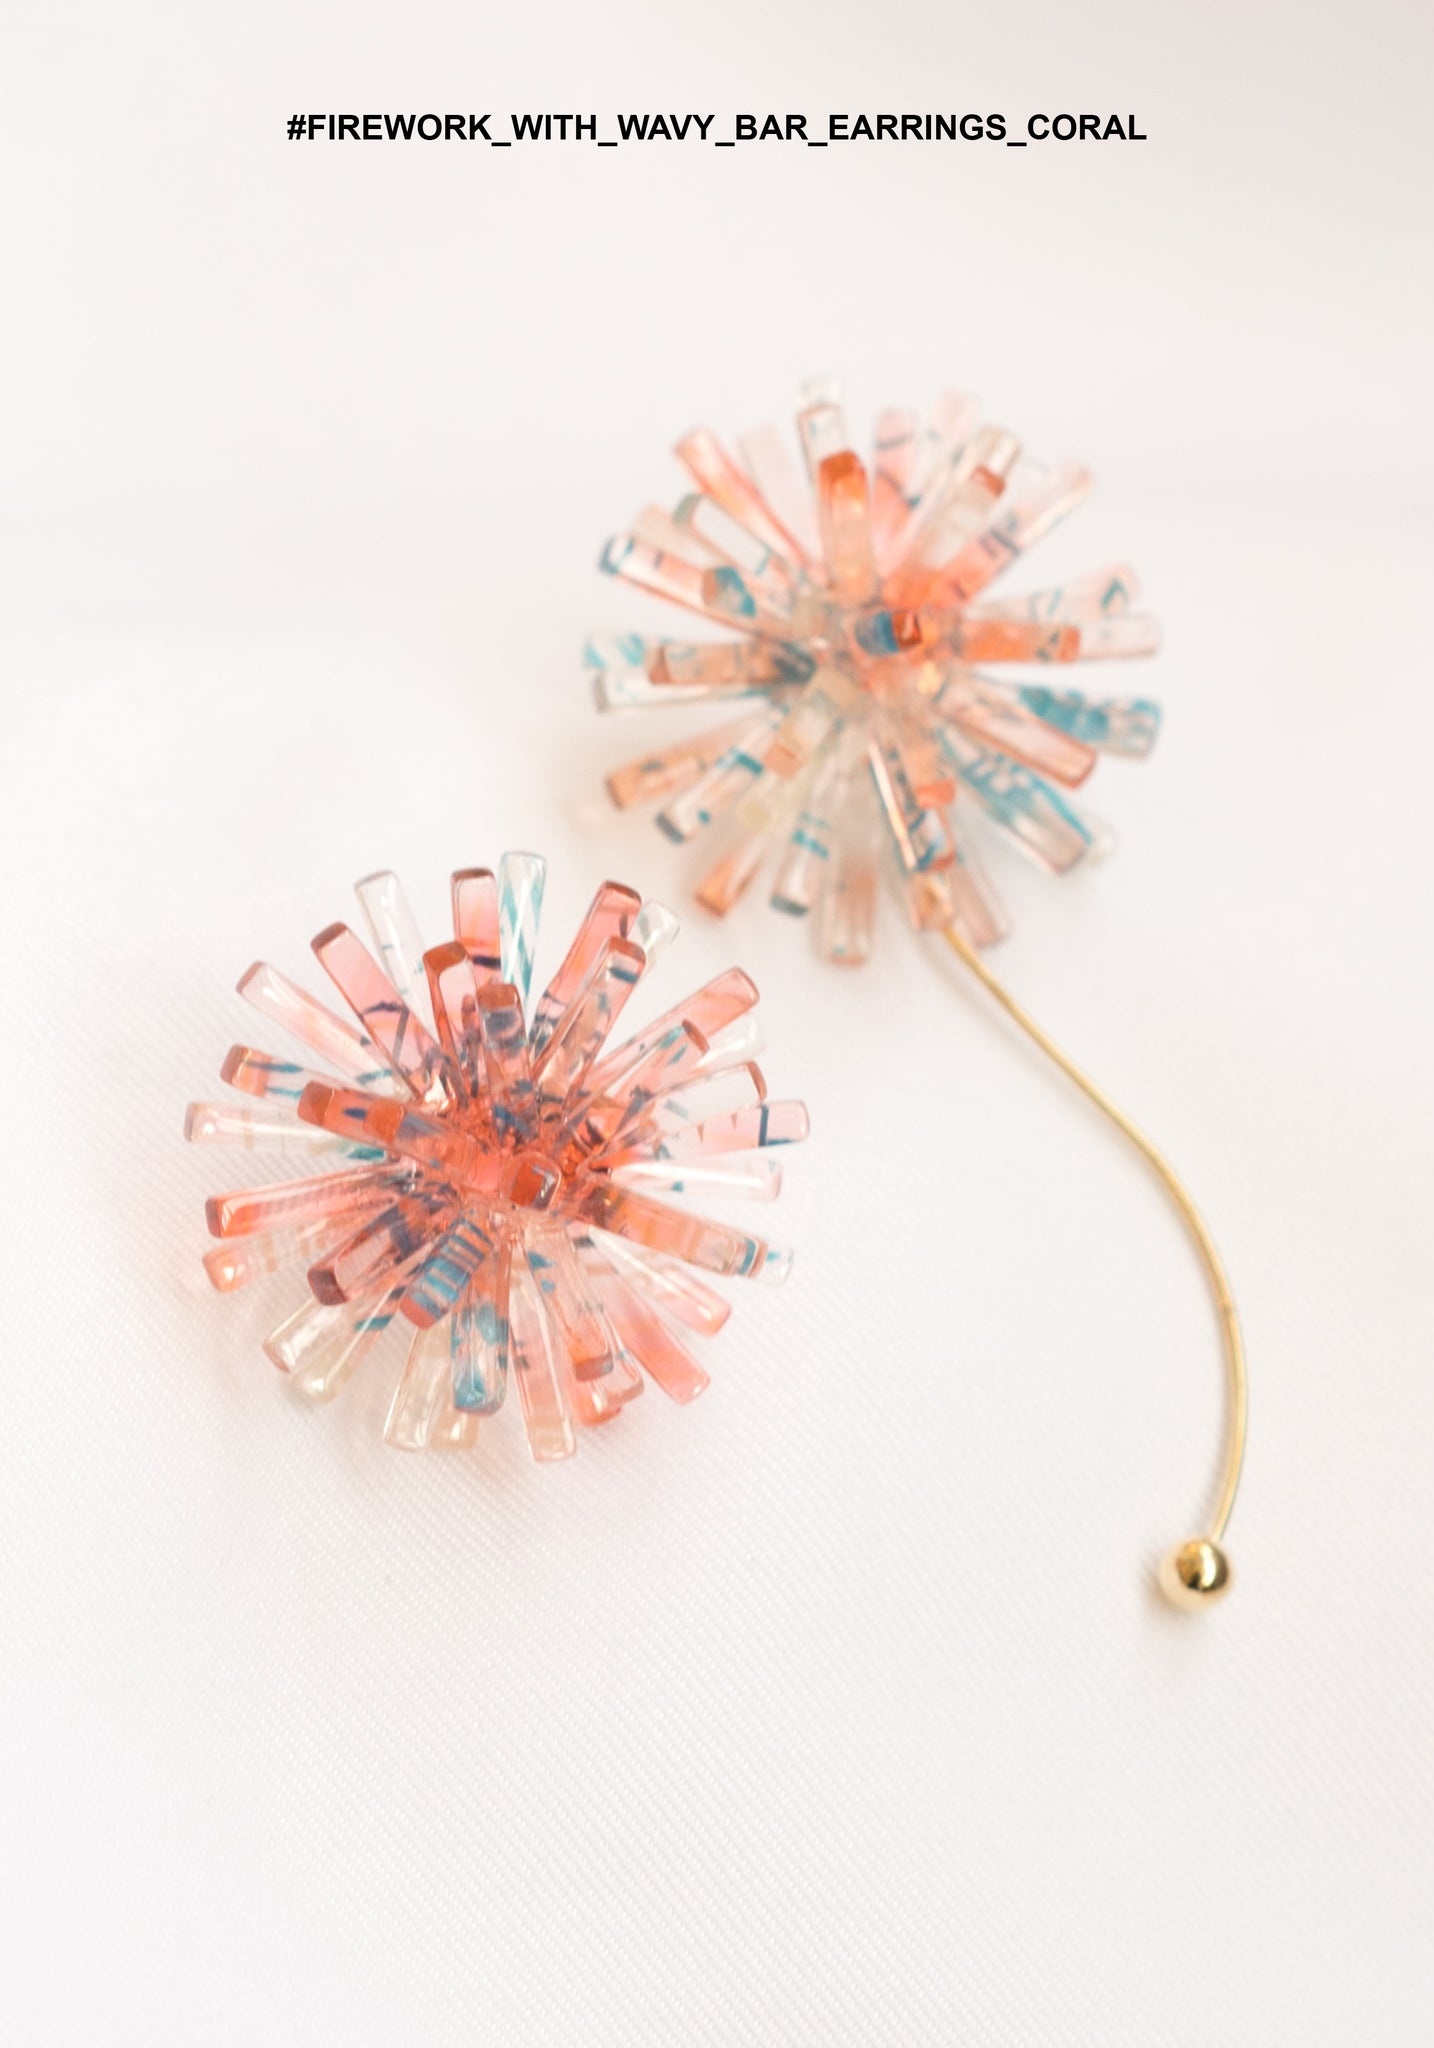 Firework With Wavy Bar Earrings Coral - whoami